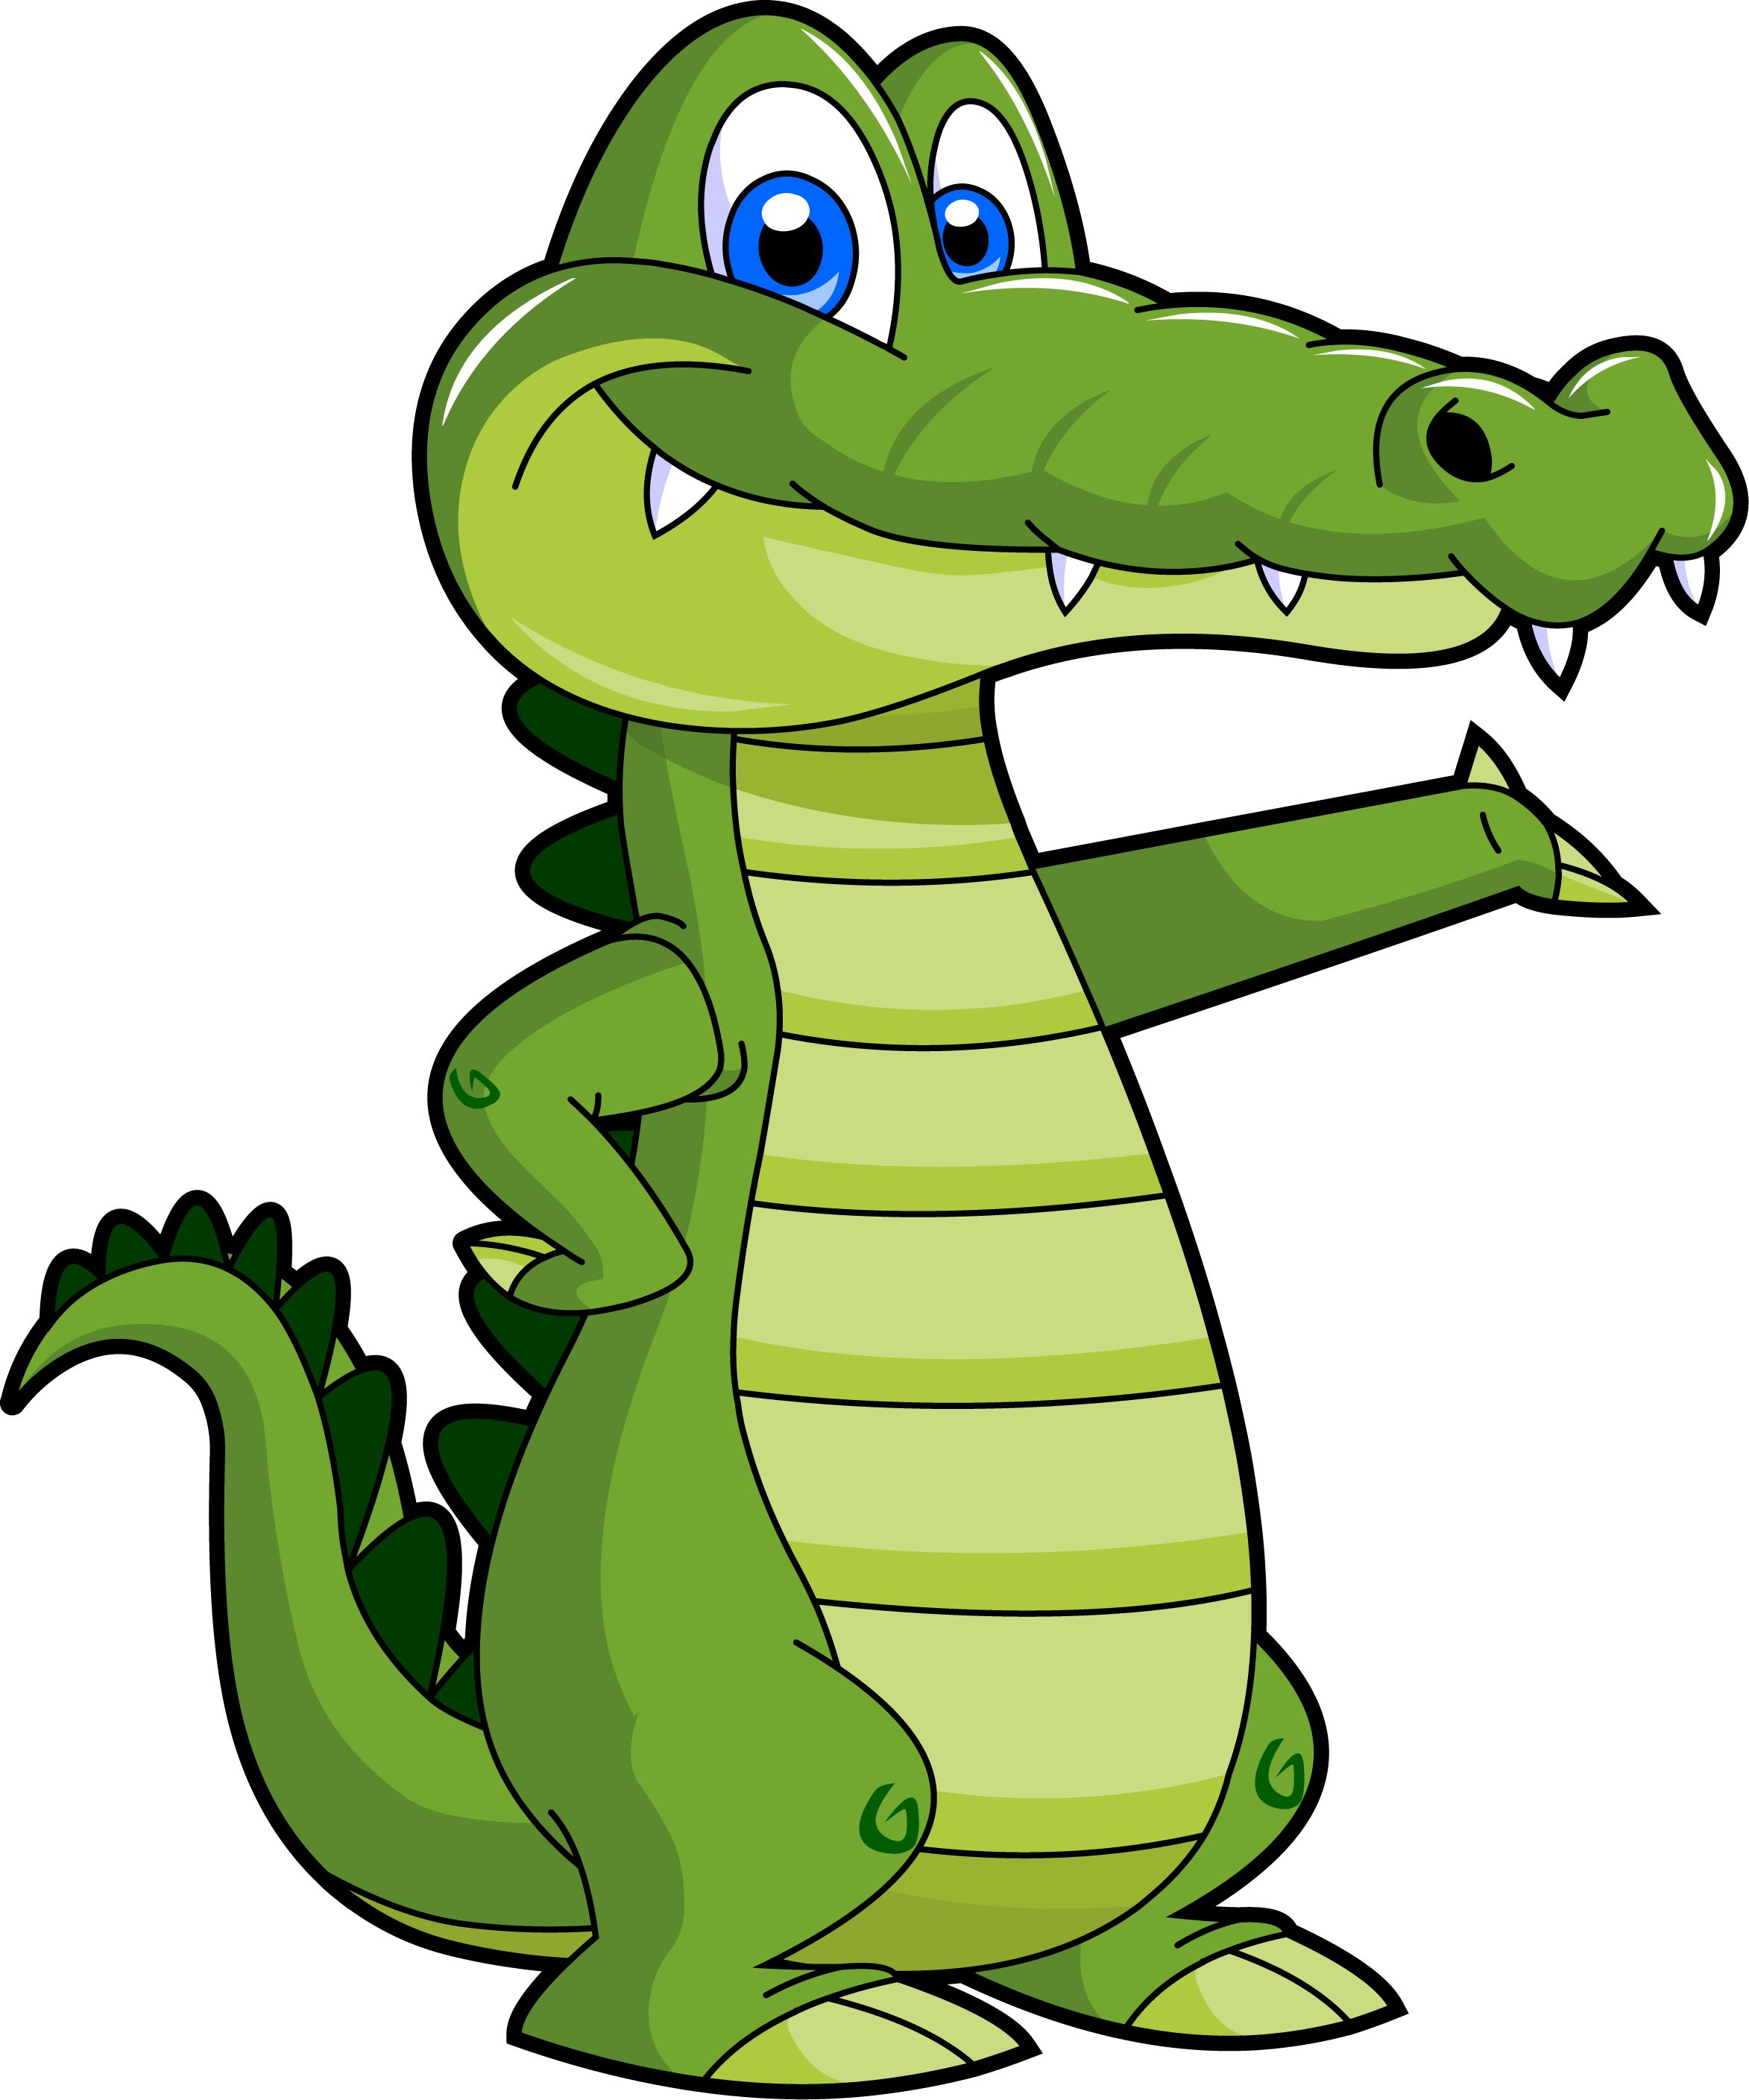 Alligator cute clipart picture black and white library Free Cartoon Pictures Of Alligators, Download Free Clip Art, Free ... picture black and white library